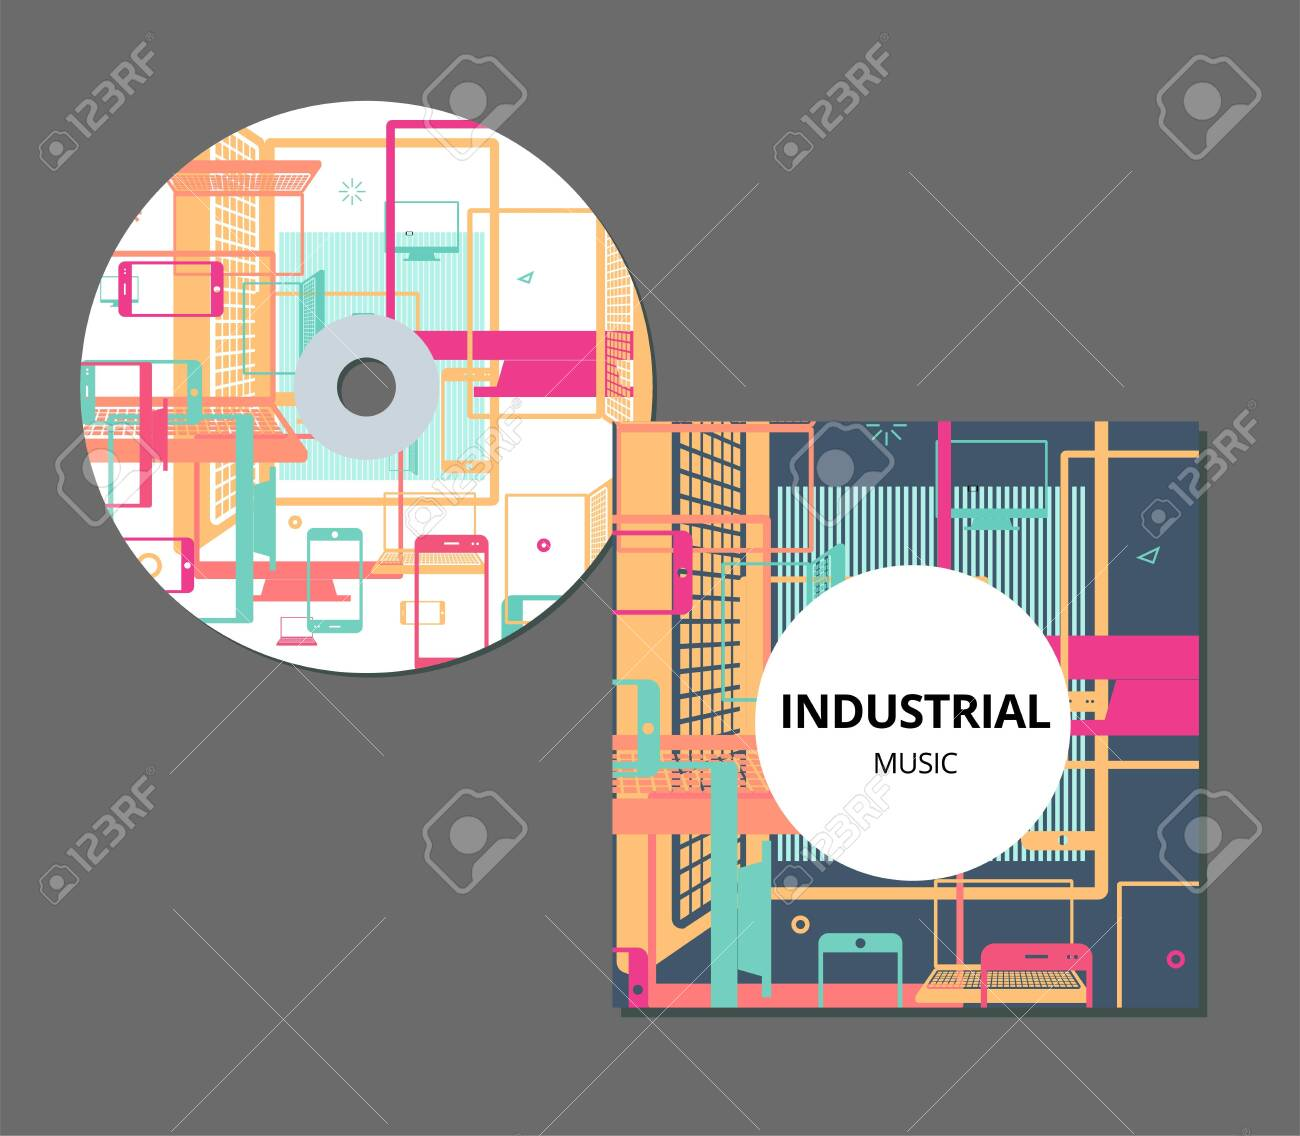 Cd cover design template eps 10 transparencies vector image.